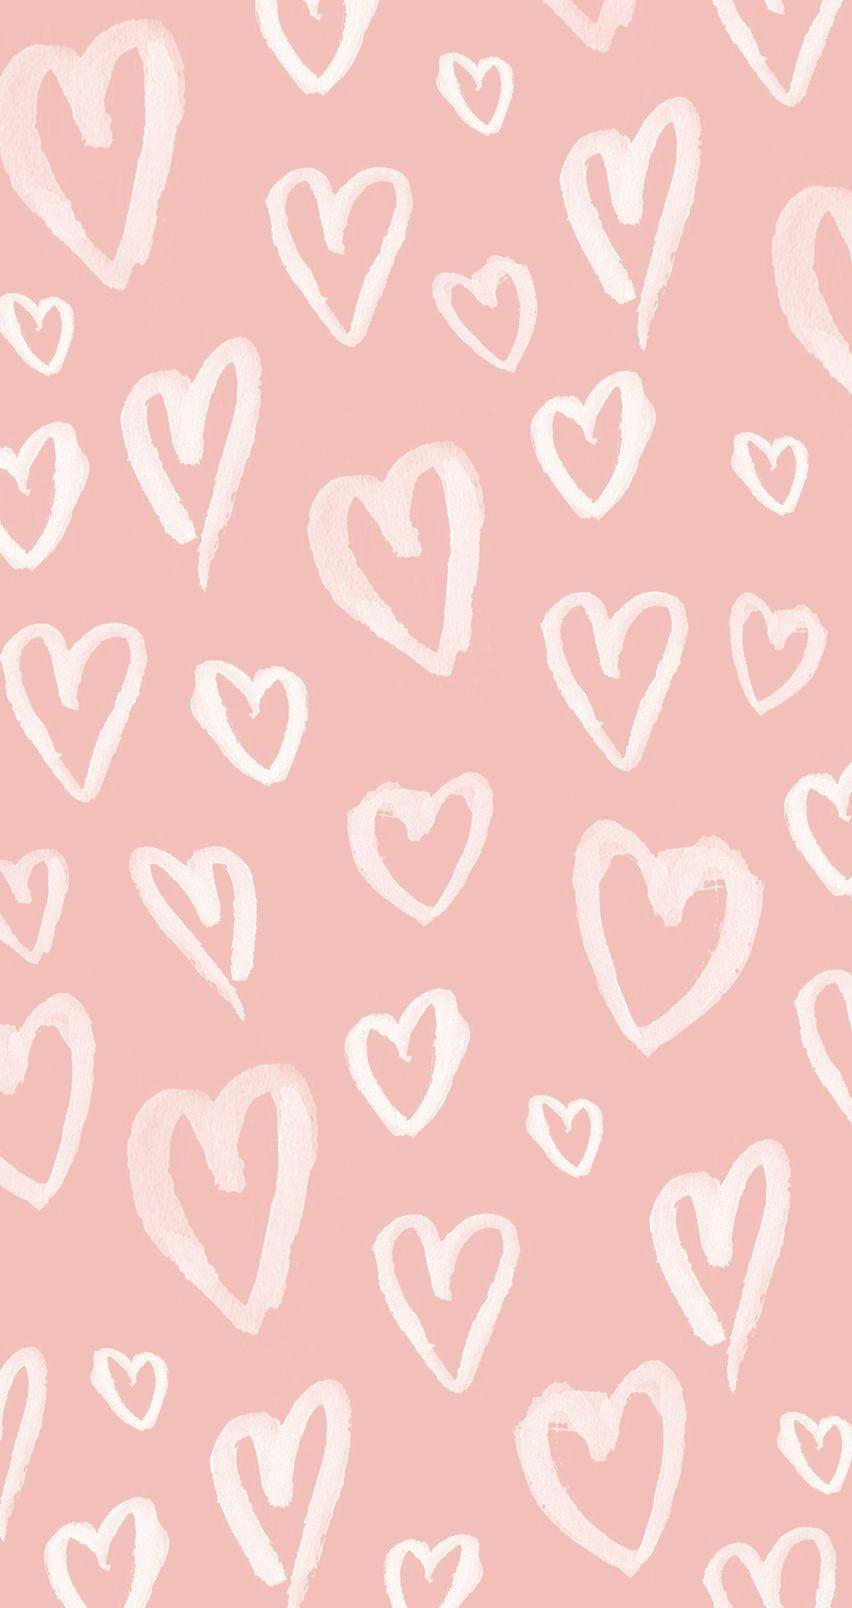 Pastel Pink Hearts iPhone Wallpapers @PanPins